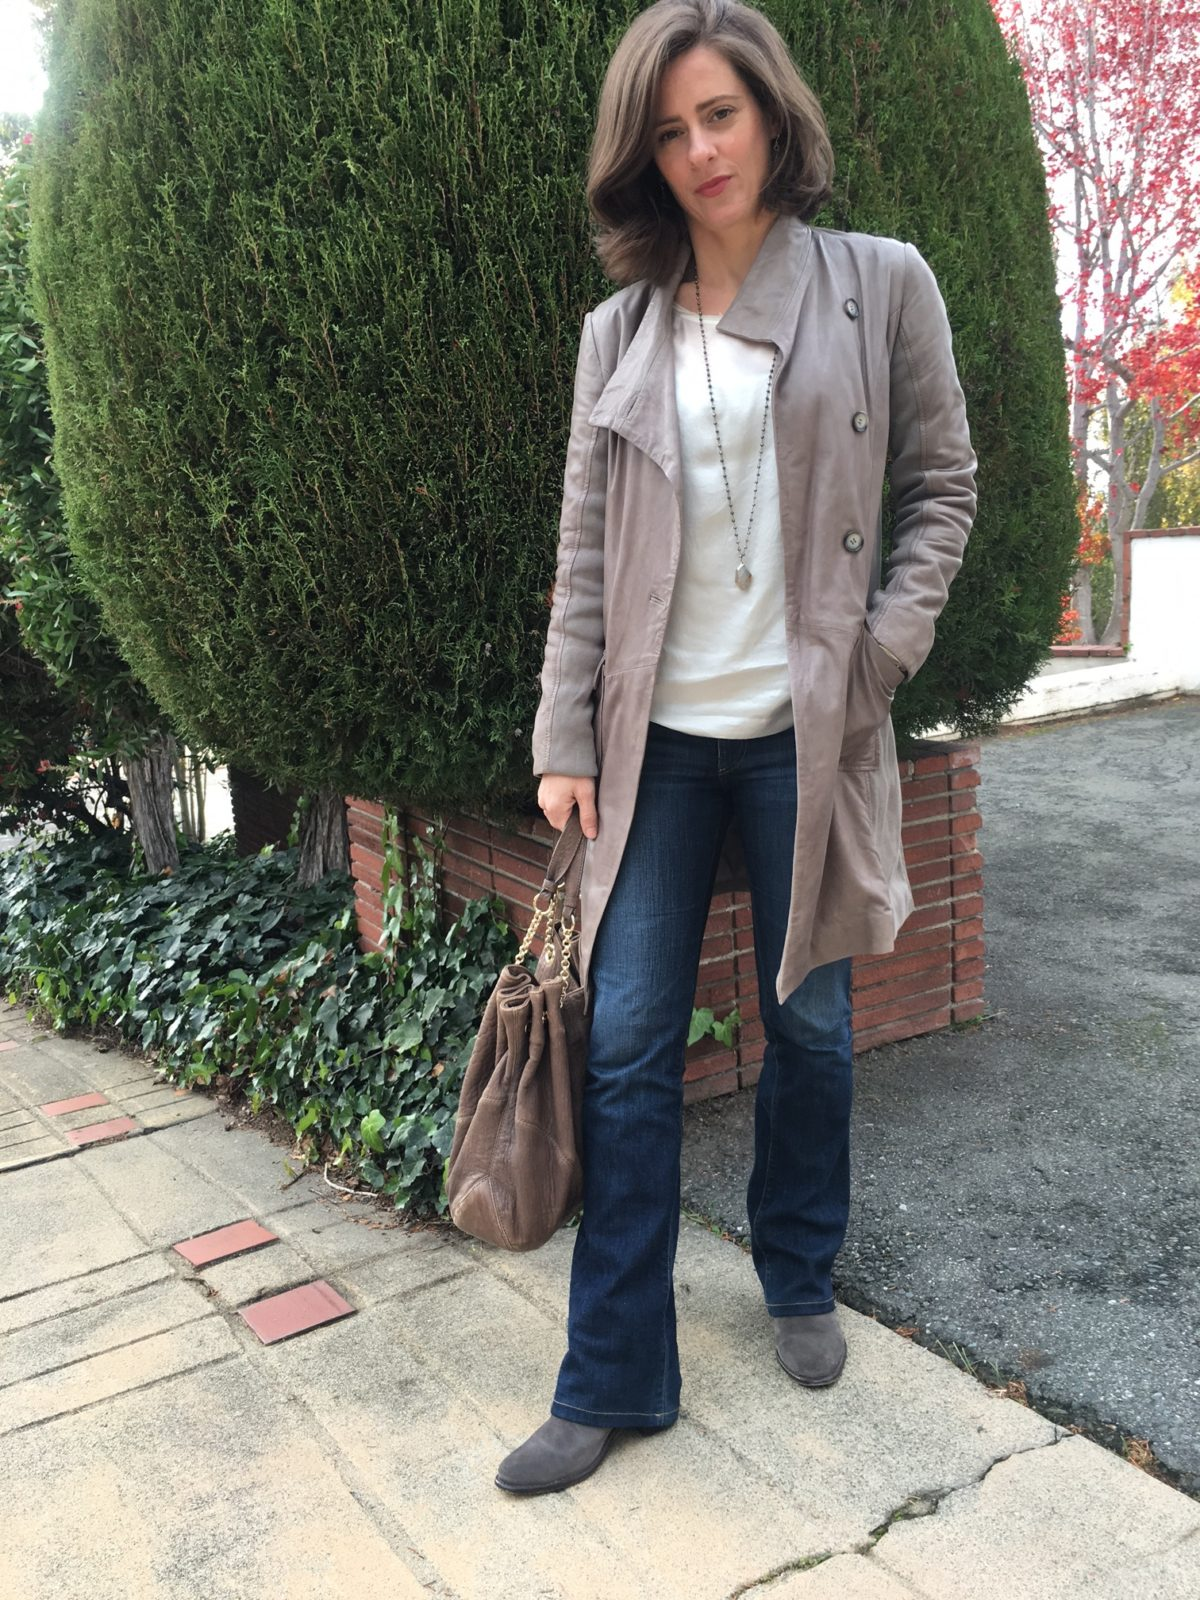 Erin wearing leather, suede and denim in a work outfit on BrendaKinsel.com